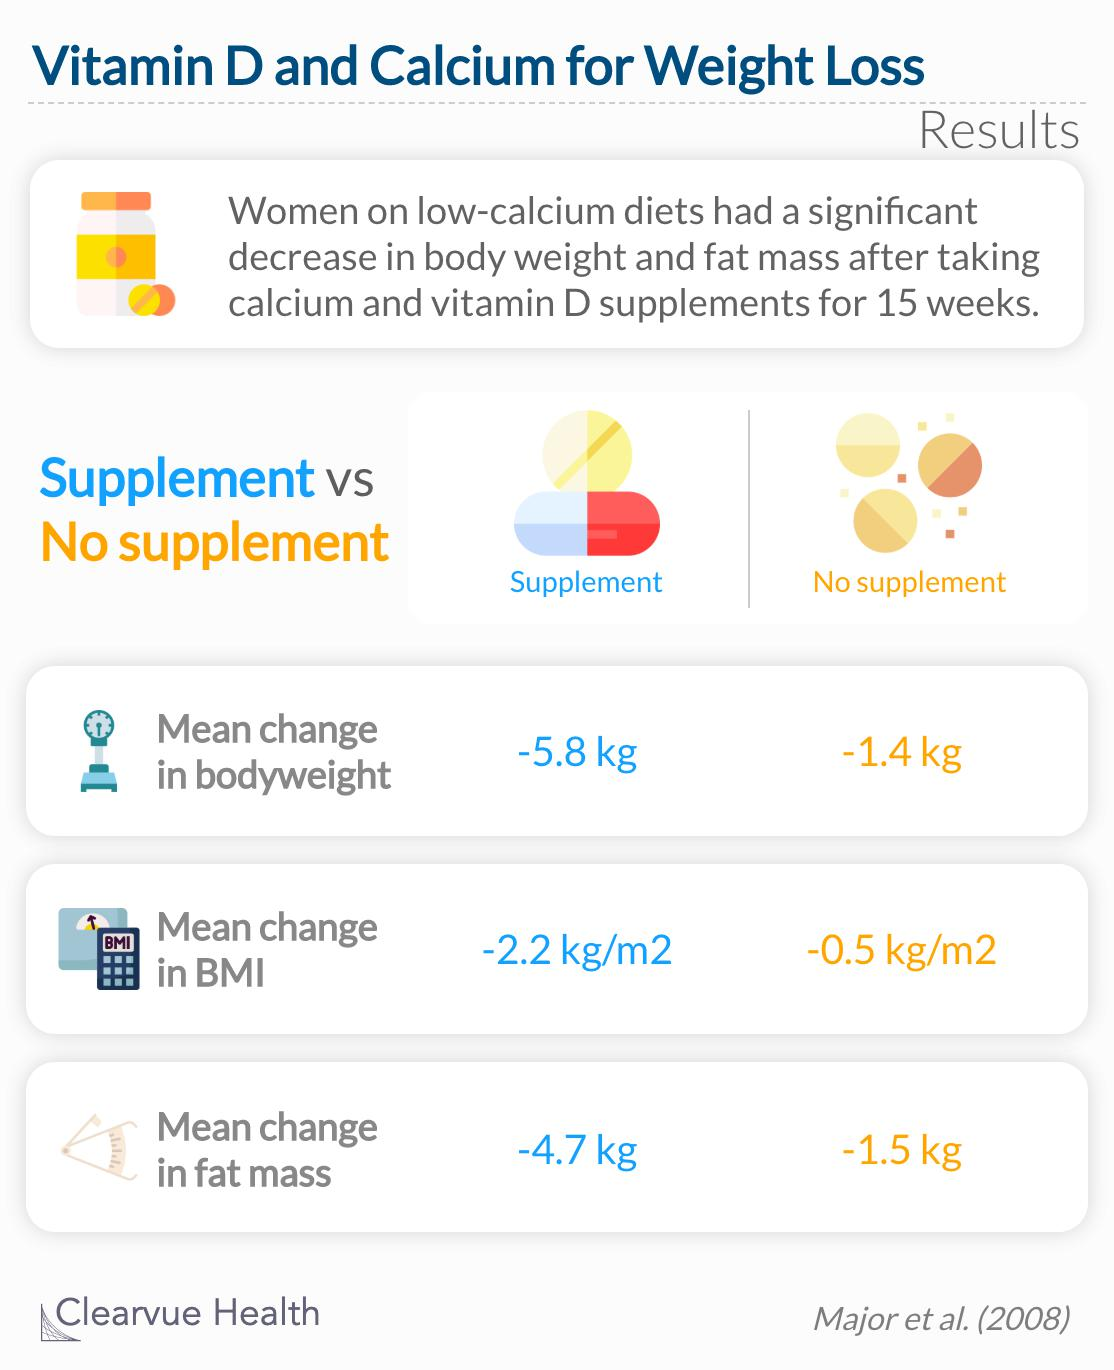 Women on low-calcium diets had a significant decrease in body weight and fat mass after taking calcium and vitamin D supplements for 15 weeks.